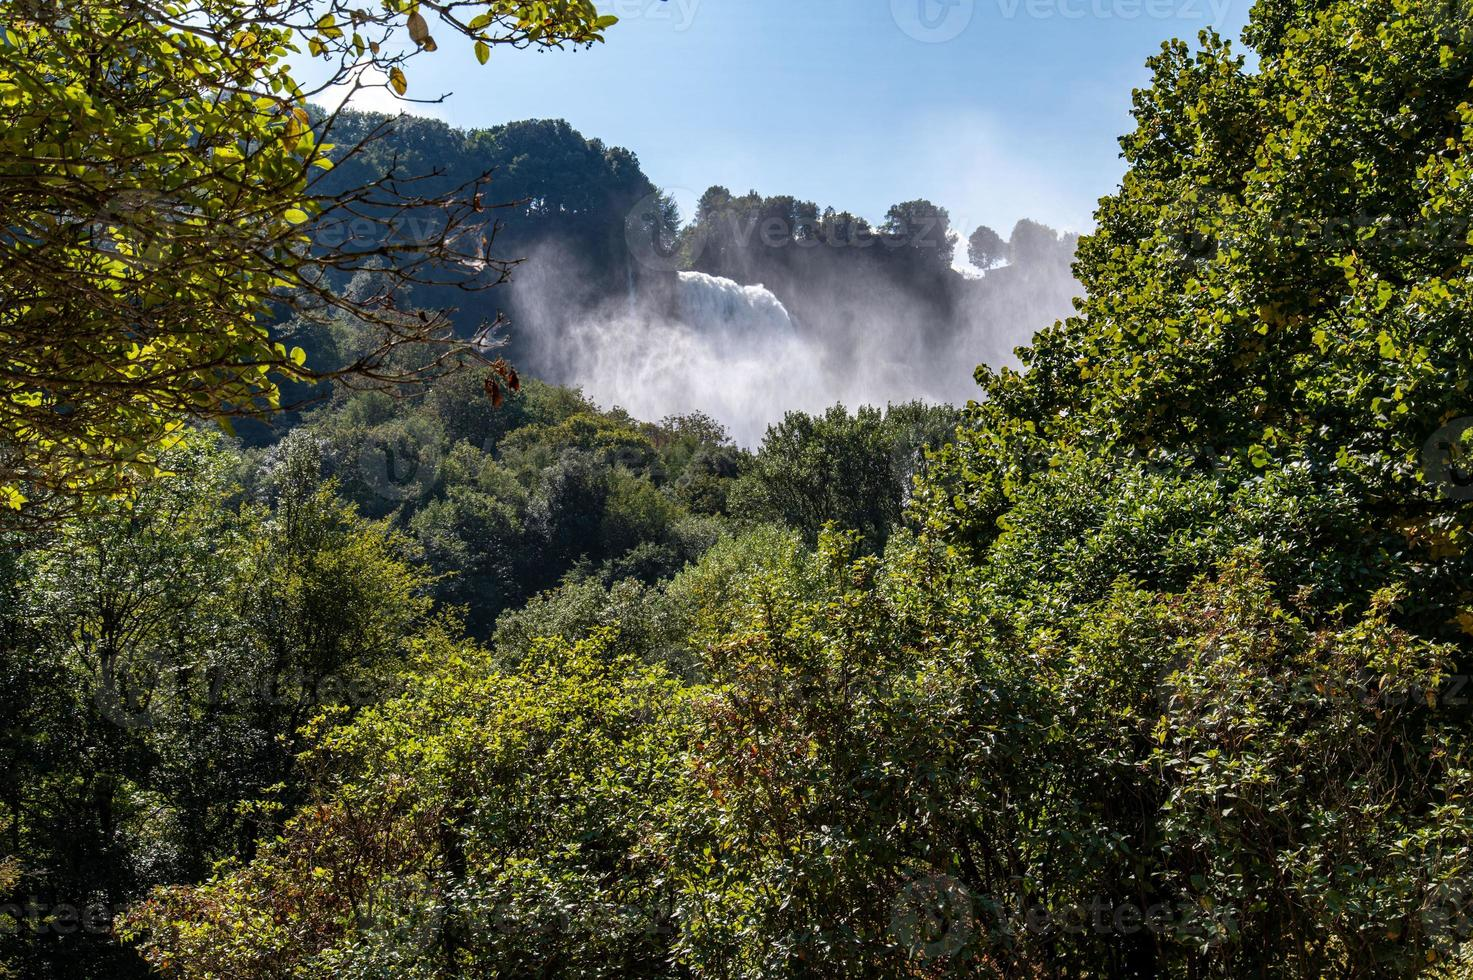 Waterfall marmore artificial waterfall in Umbria photo